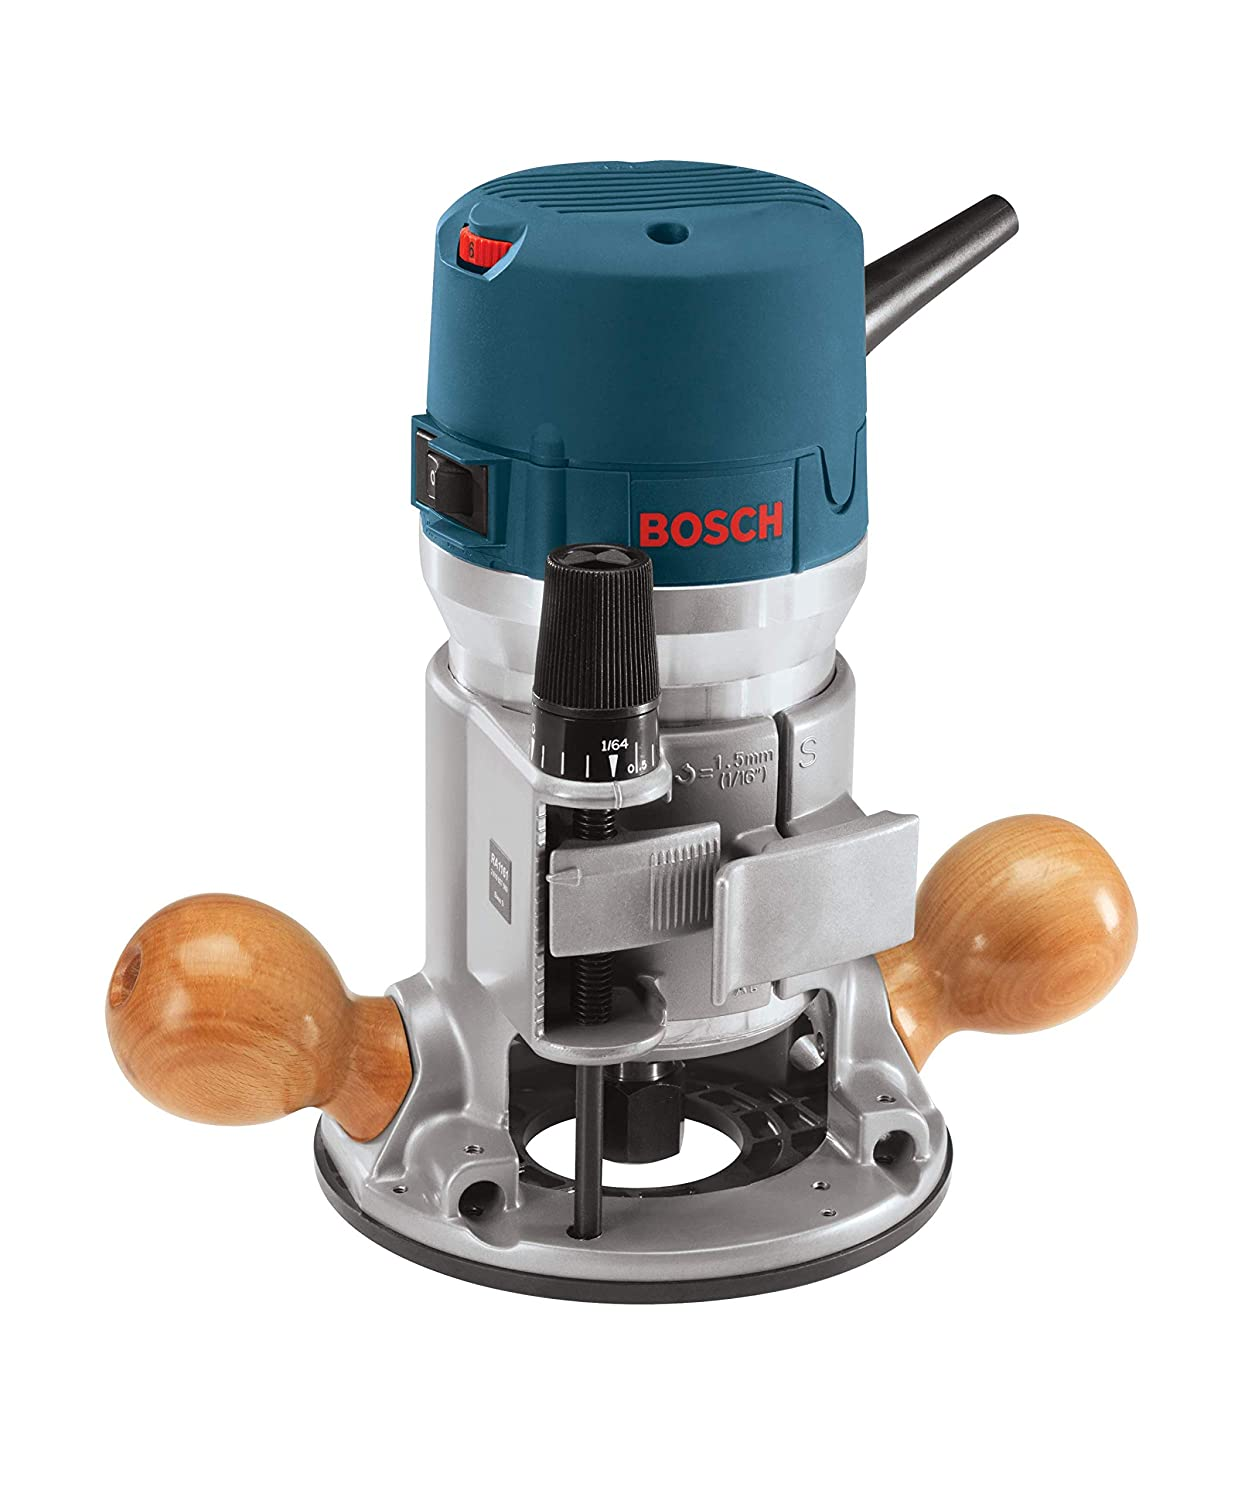 Bosch 1617EVSPK Wood Router Tool Combo Kit - 2.25 Horsepower Plunge Router & Fixed Base Router